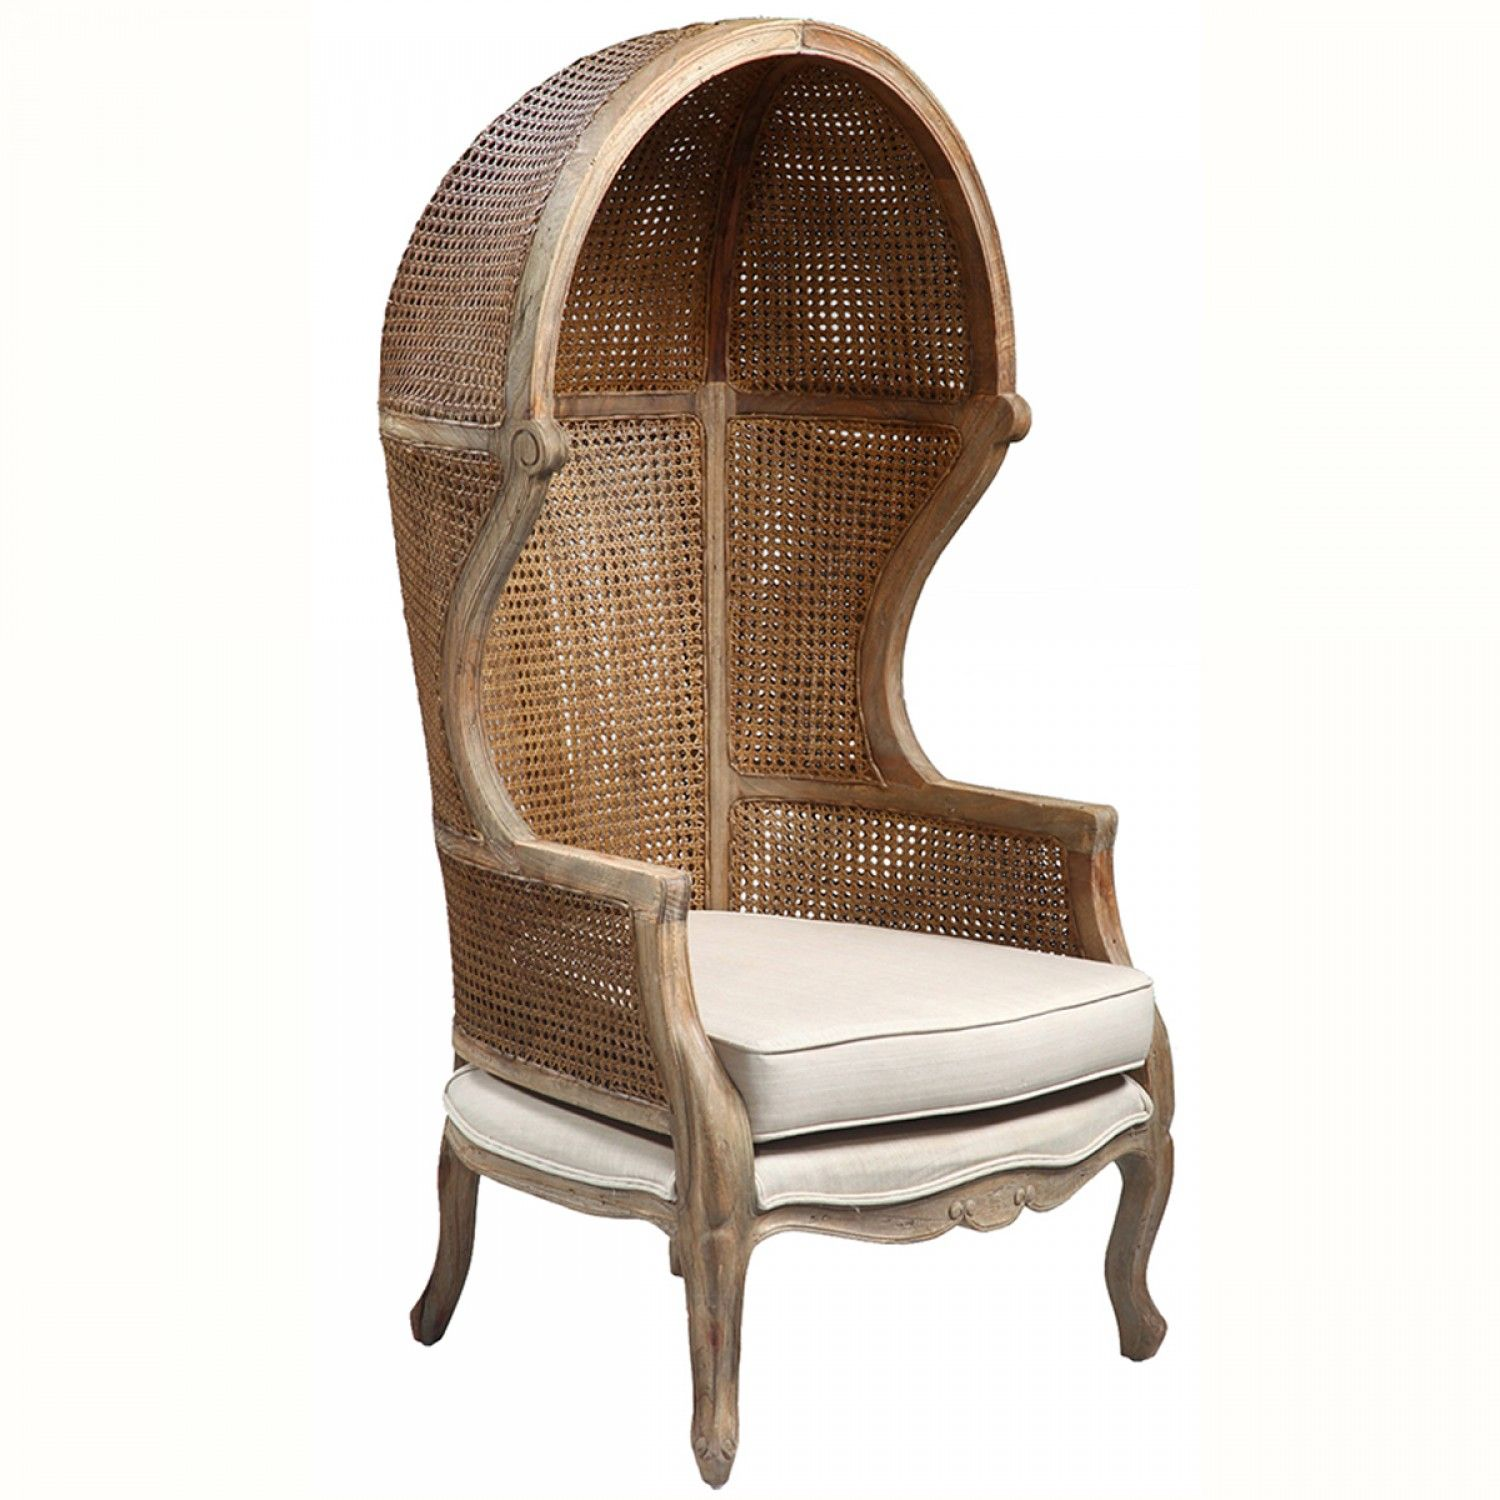 Lars Wicker Dome Chair $652 00 whitedove